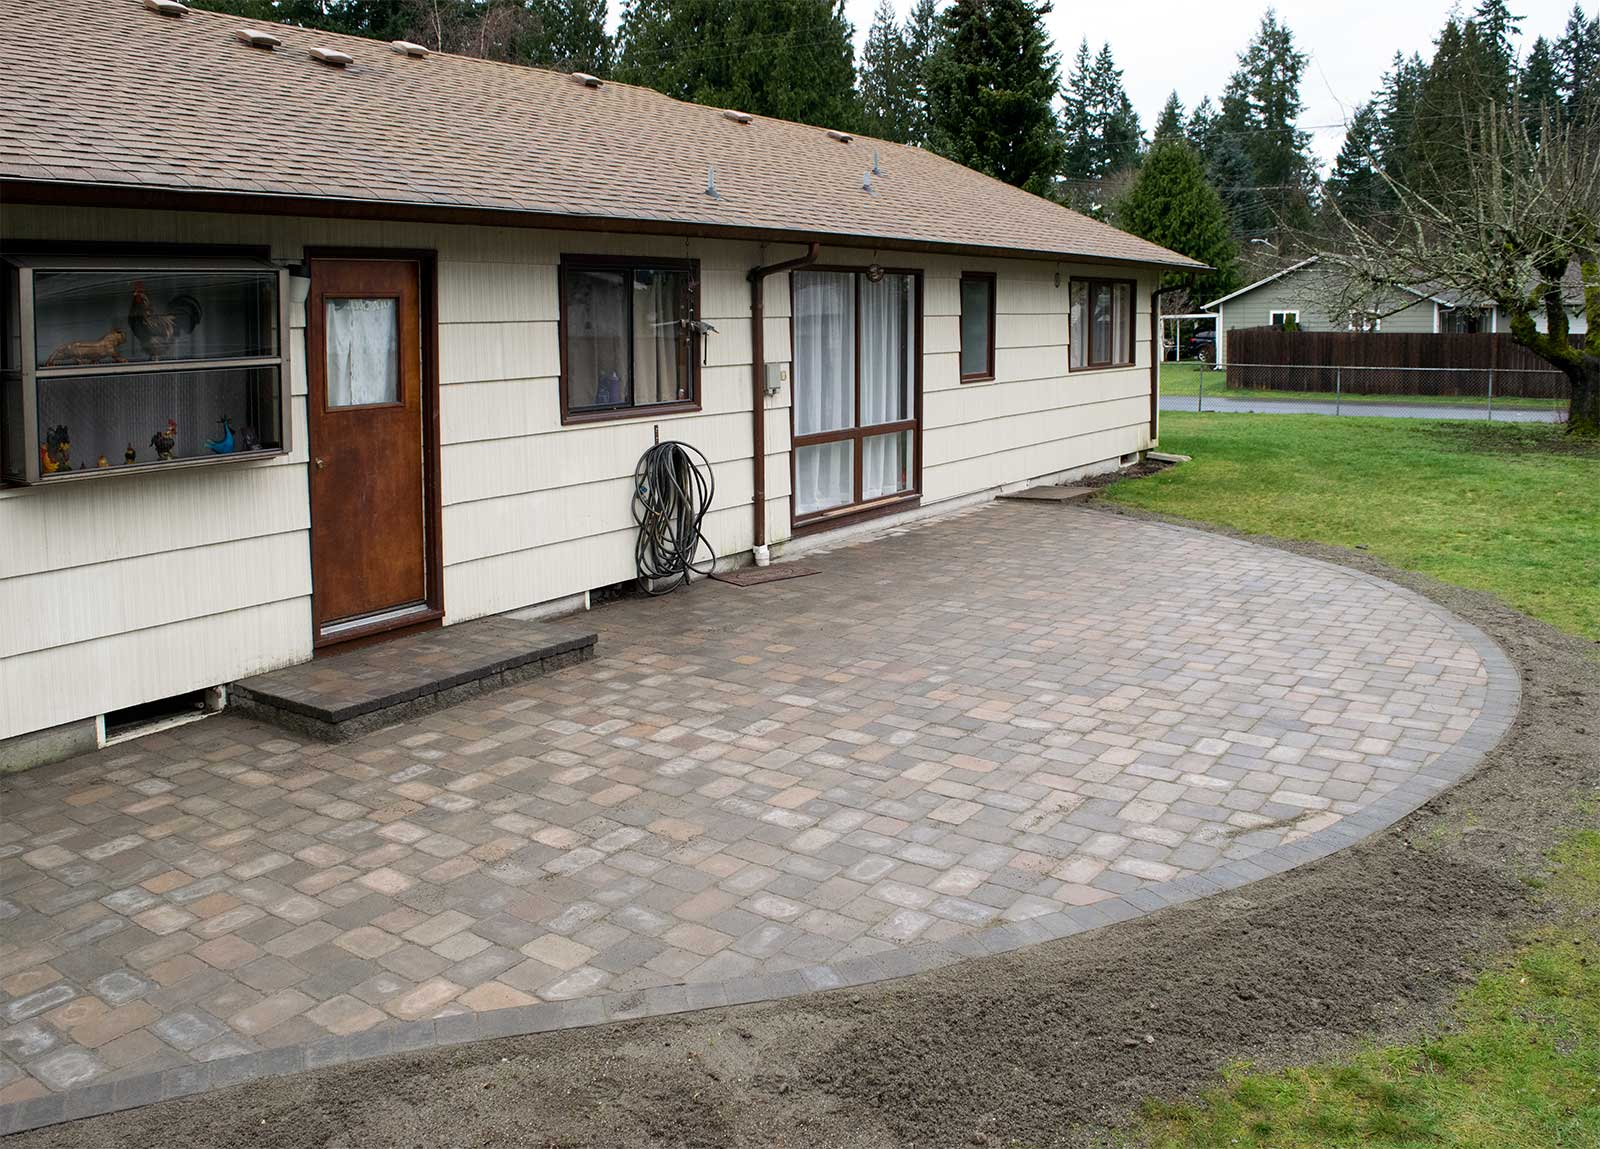 Superbe Roca Style Tumbled Paver Patio Brings New Life To This Lacey Rambleru0027s  Backyard. Point To